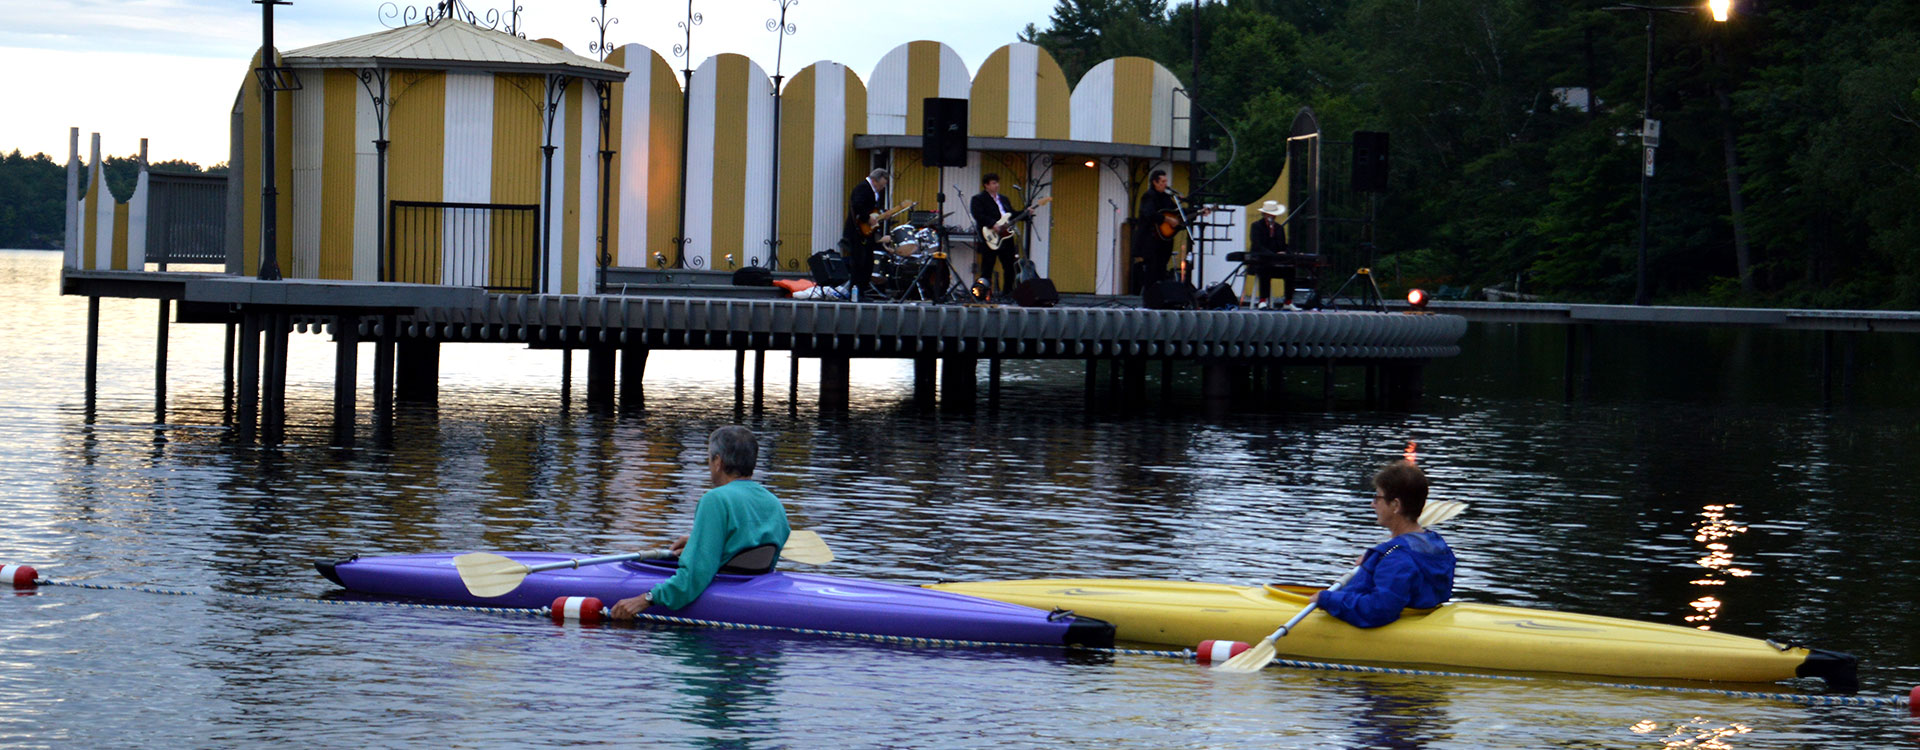 Kayaking on the water at Gull Lake Music on the Barge, Explore and Play